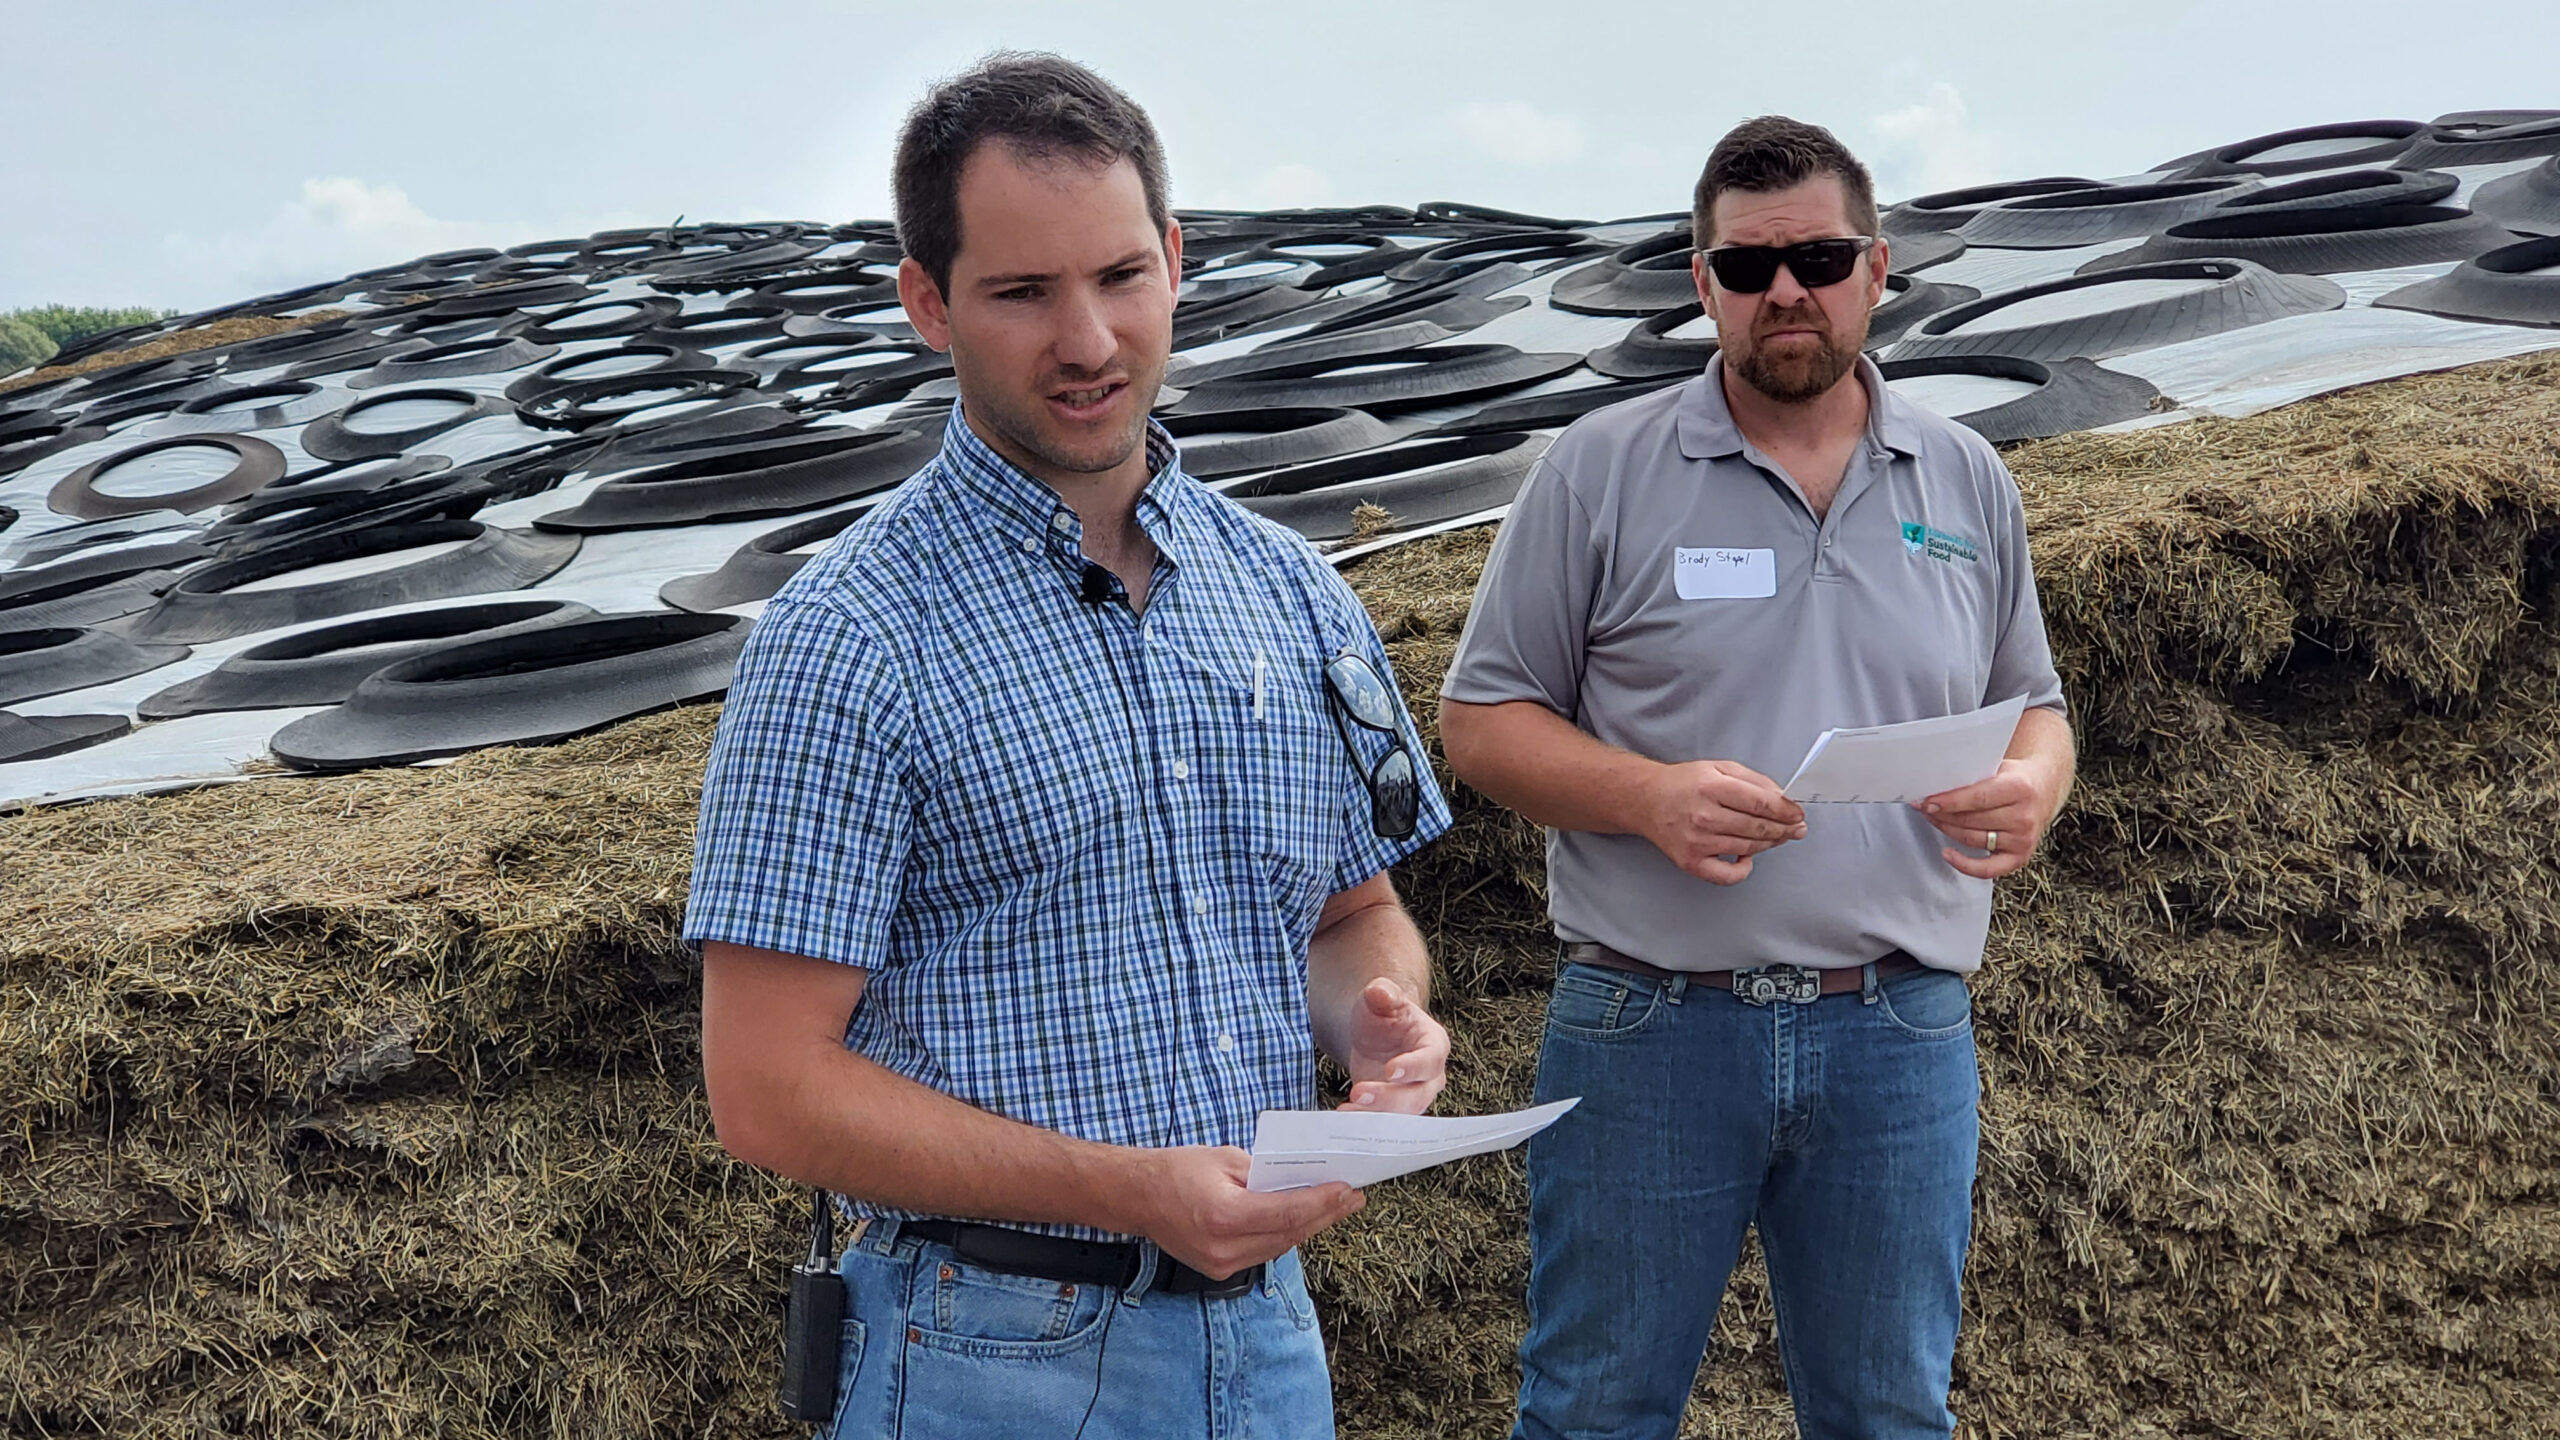 Farmers explore forage 'cocktail mixes' for soil health and profitability